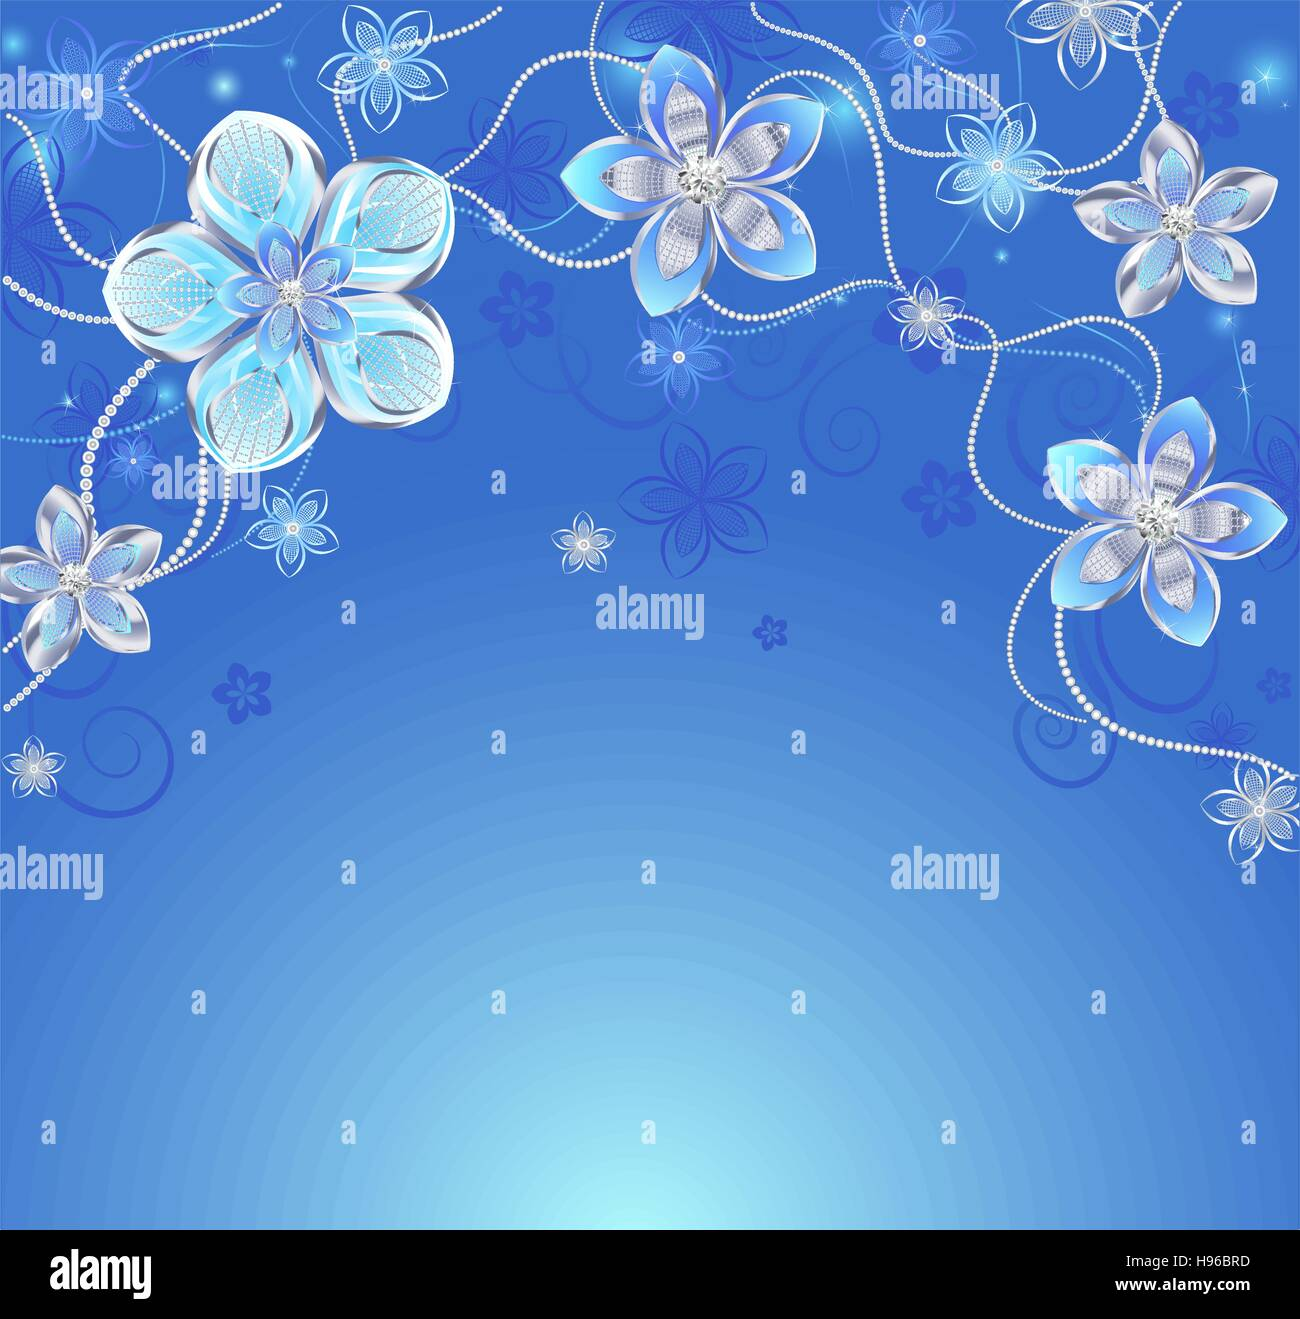 Glowing Blue Background With Silver Colors Adorned Reticulated Pattern And Diamonds